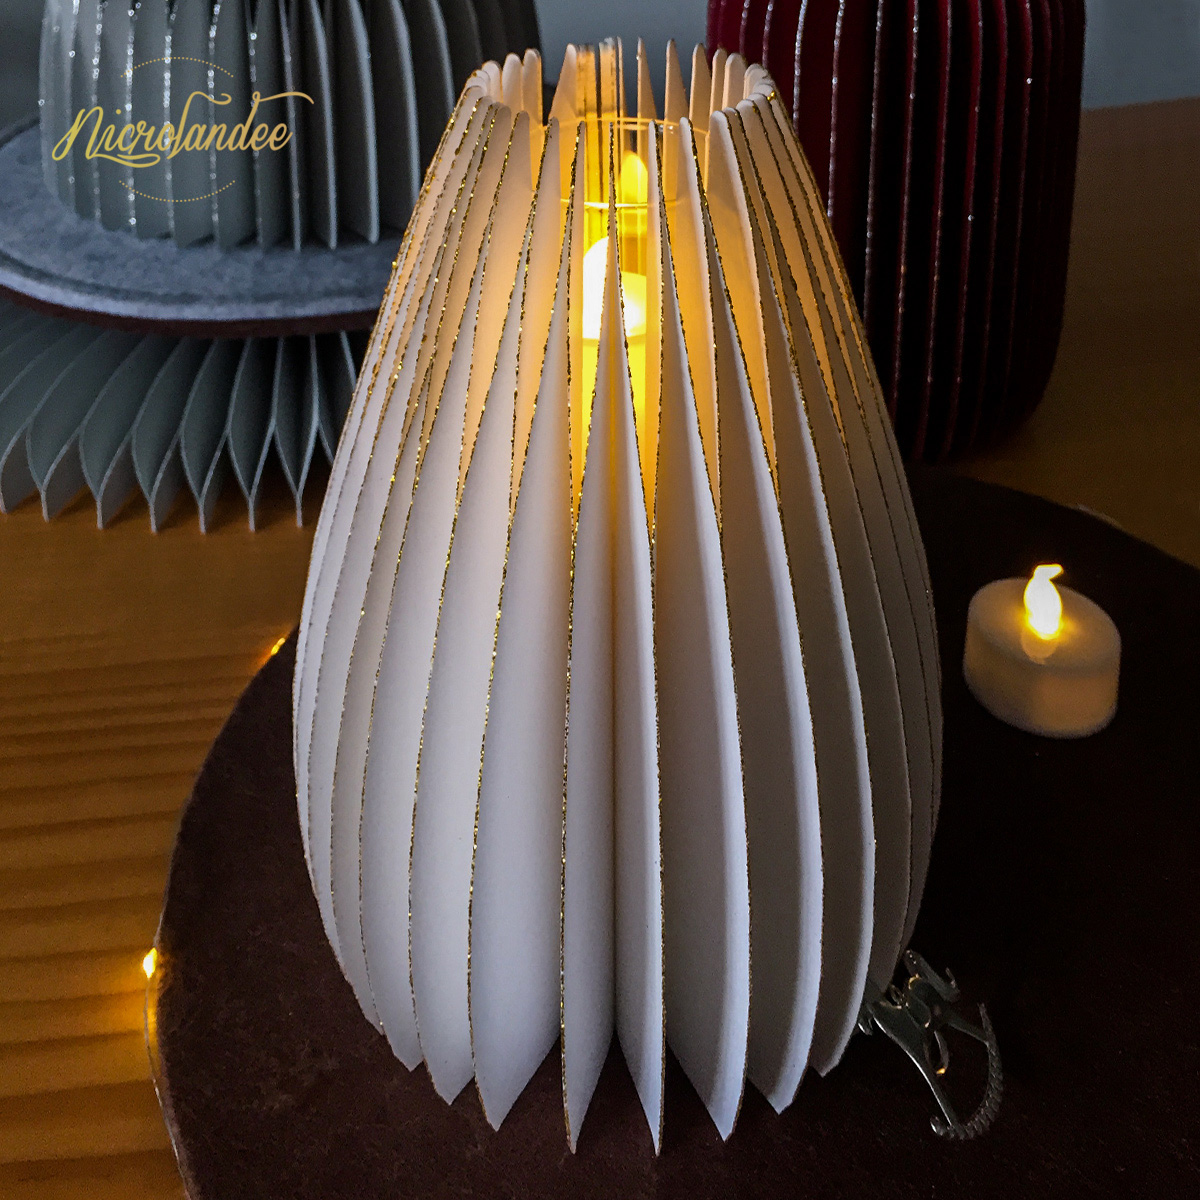 NICROLANDEE Water Droplets Shape Shiny Paper Vase Wedding Lovers Party Home New Decor Home Party Decoration DIY in Party DIY Decorations from Home Garden